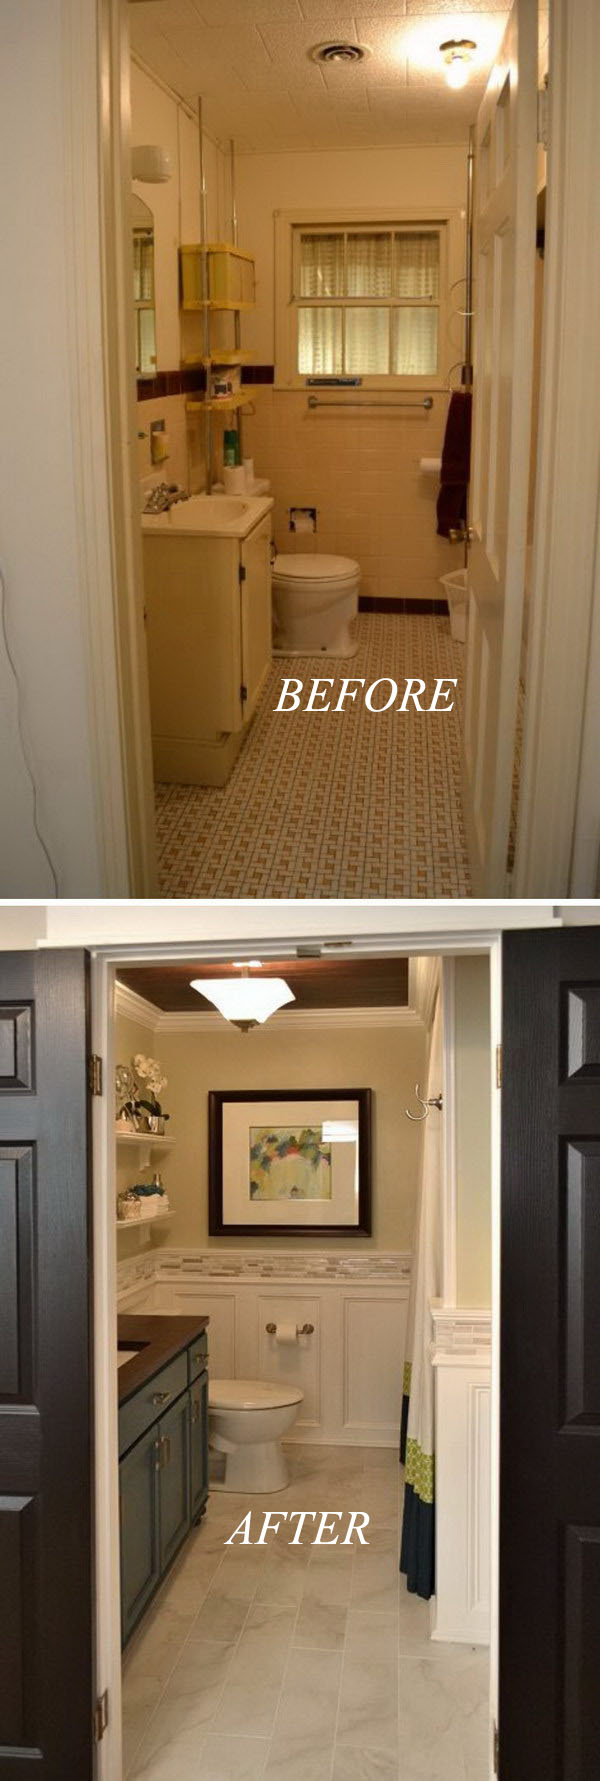 before and after 20 awesome bathroom makeovers hative. Black Bedroom Furniture Sets. Home Design Ideas